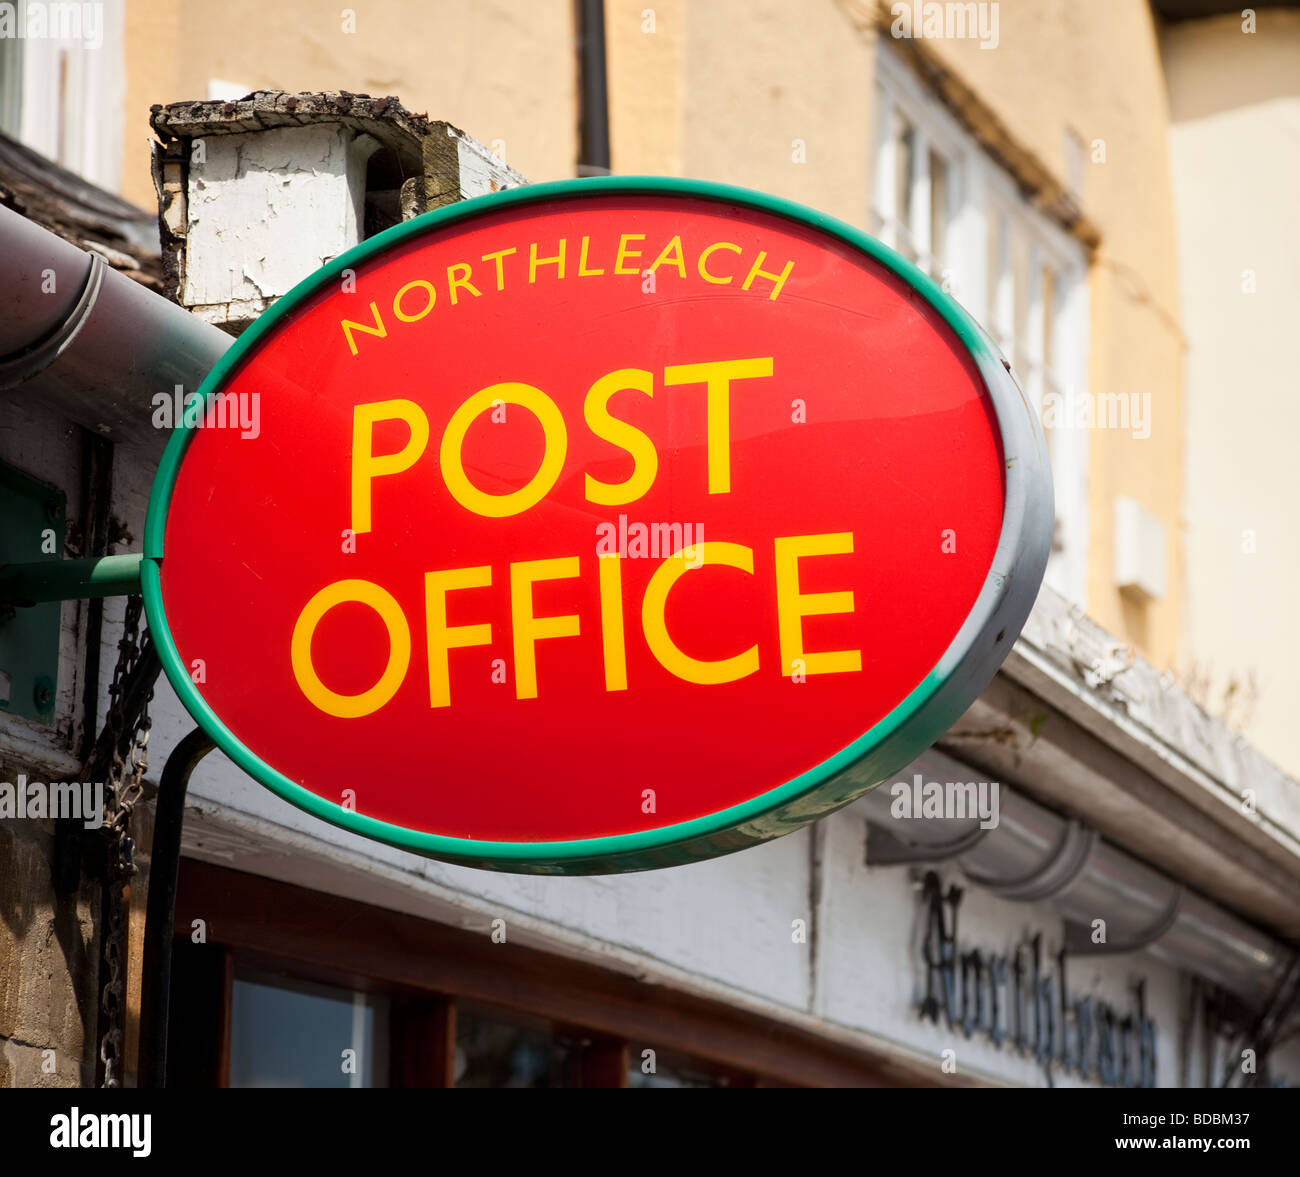 Post Office sign at Northleach, Gloucester, England, UK - Stock Image